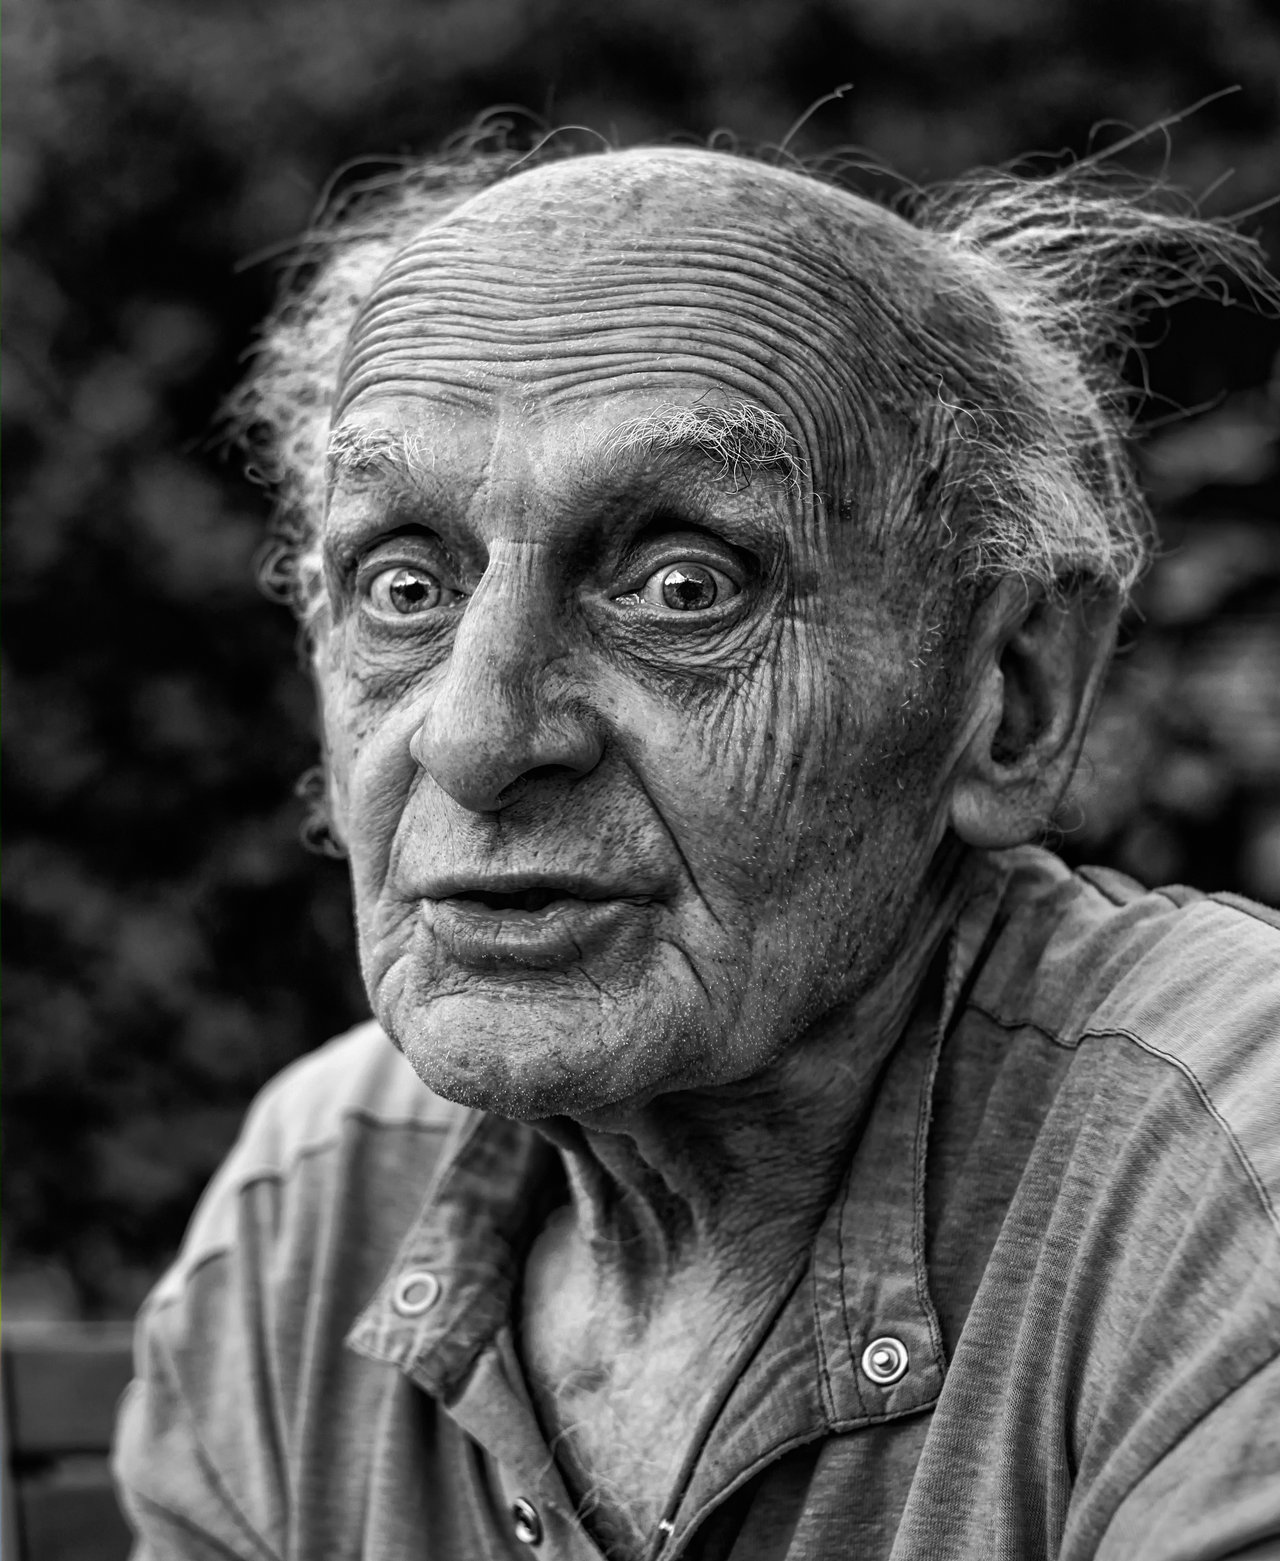 The Different Faces of a Old Man - Cool Stories and Photos